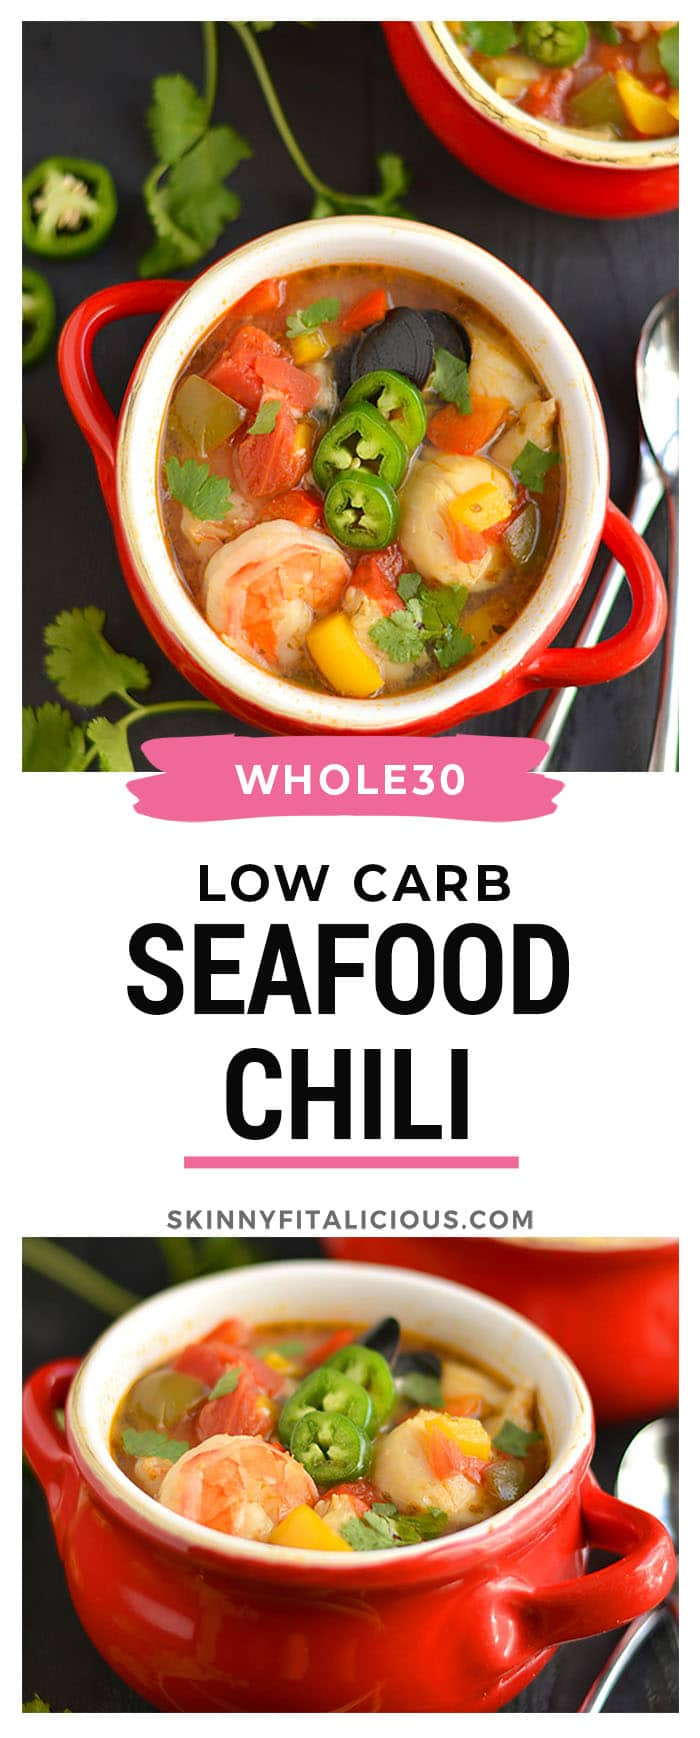 This Seafood Chili is hearty & healthy with a kick of spice. The perfect comforting meal for a cold day that warms the soul & takes 30 minutes to make! Gluten Free + Low Calorie + Paleo